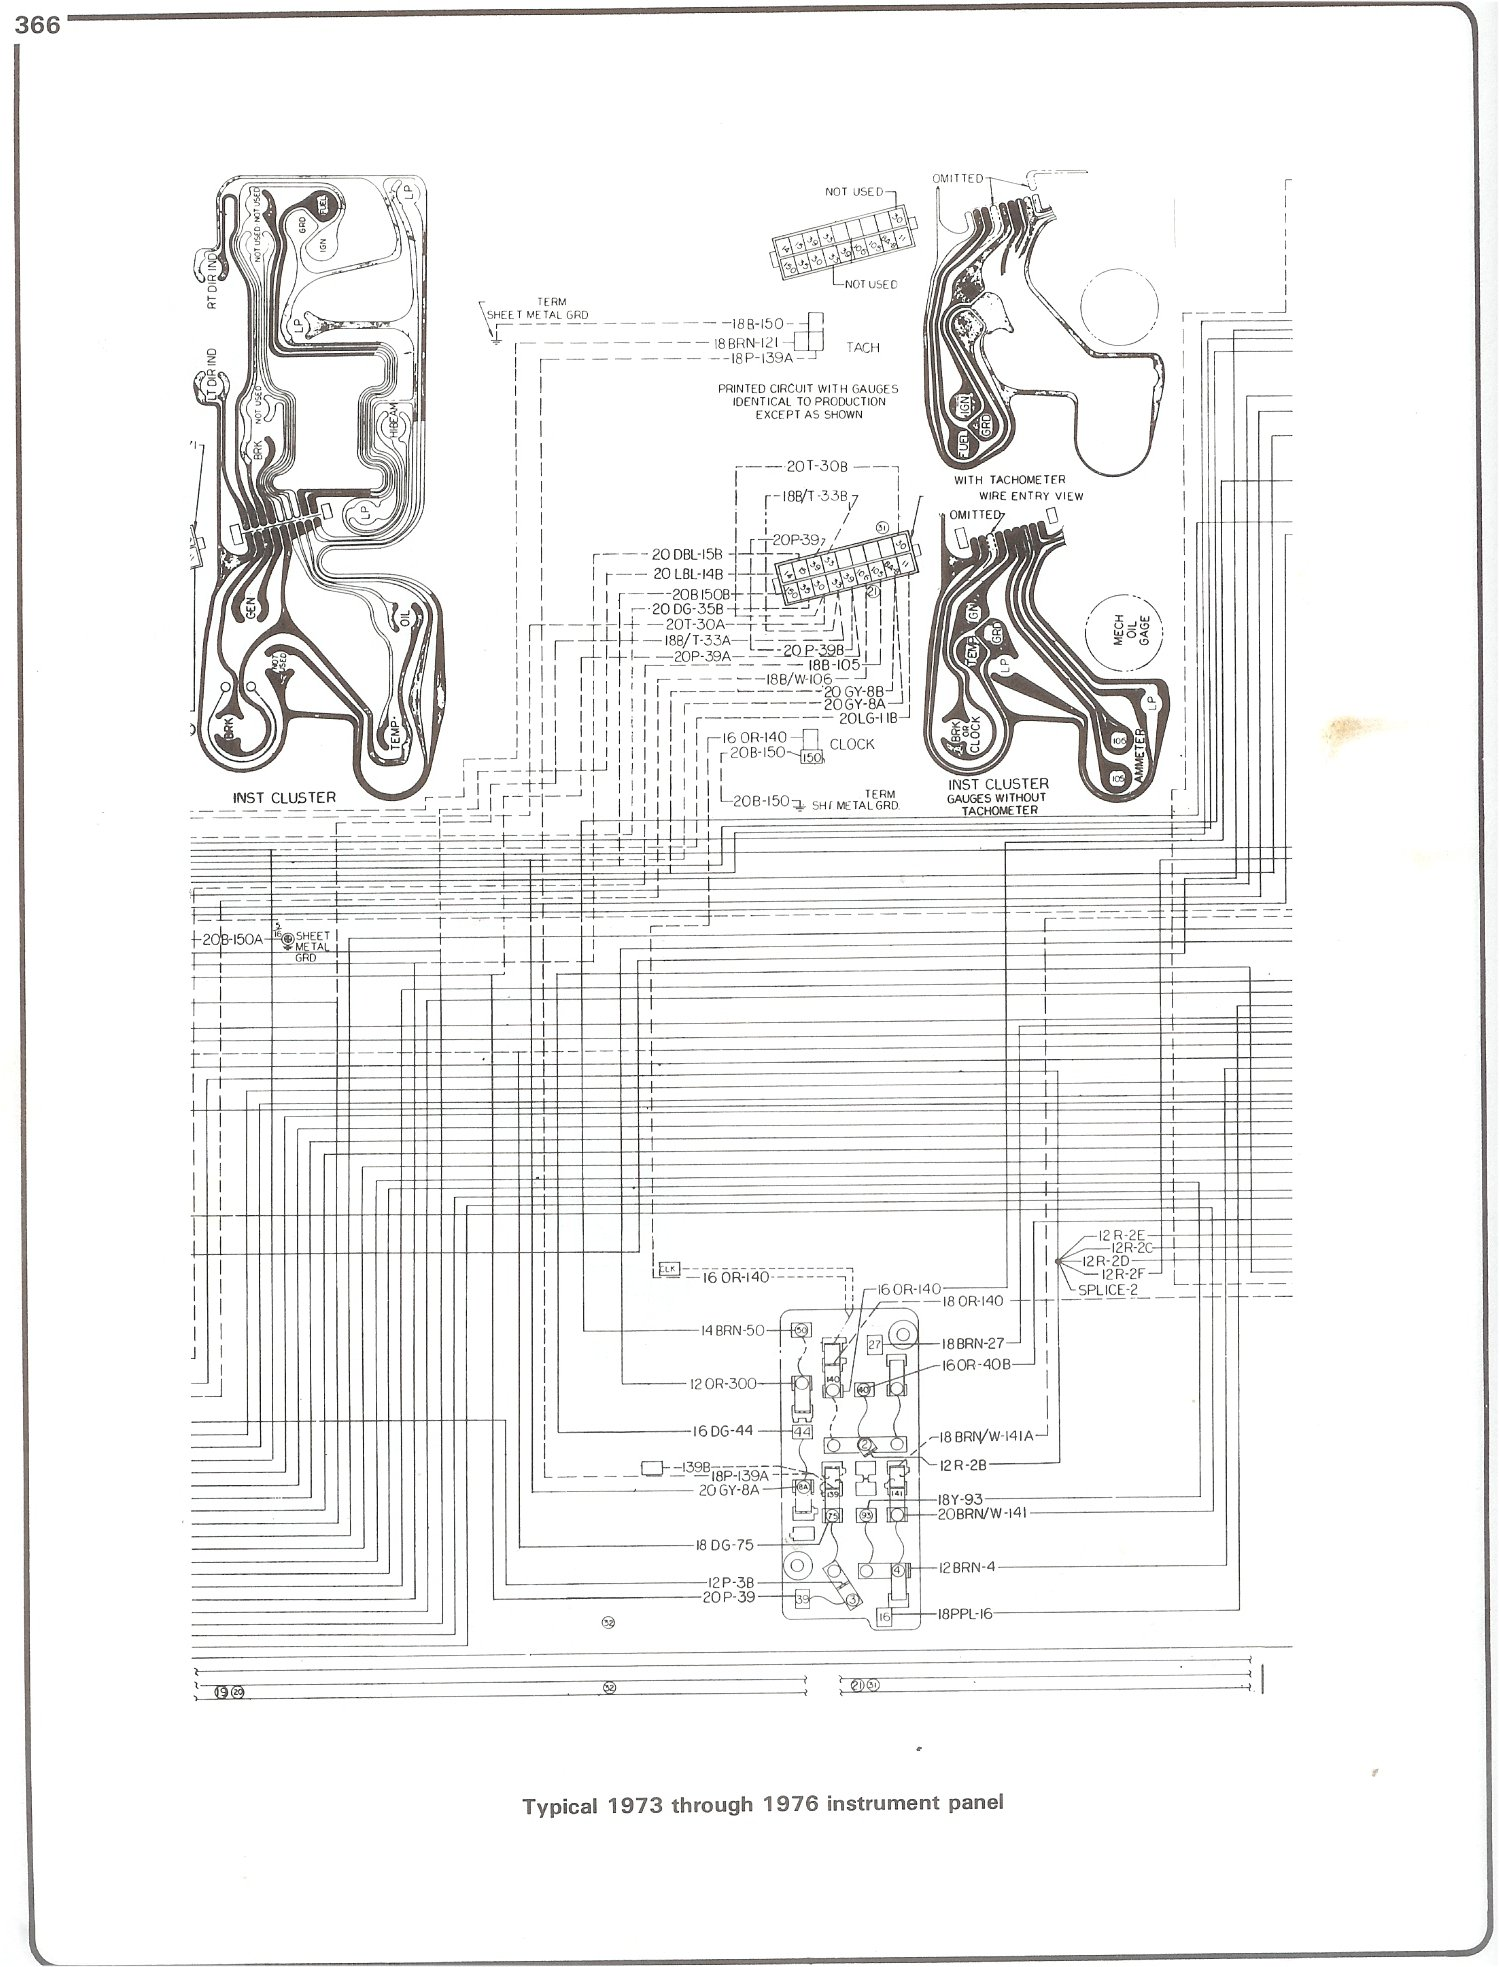 73 76_instrument complete 73 87 wiring diagrams 1987 gmc truck wiring diagram at webbmarketing.co